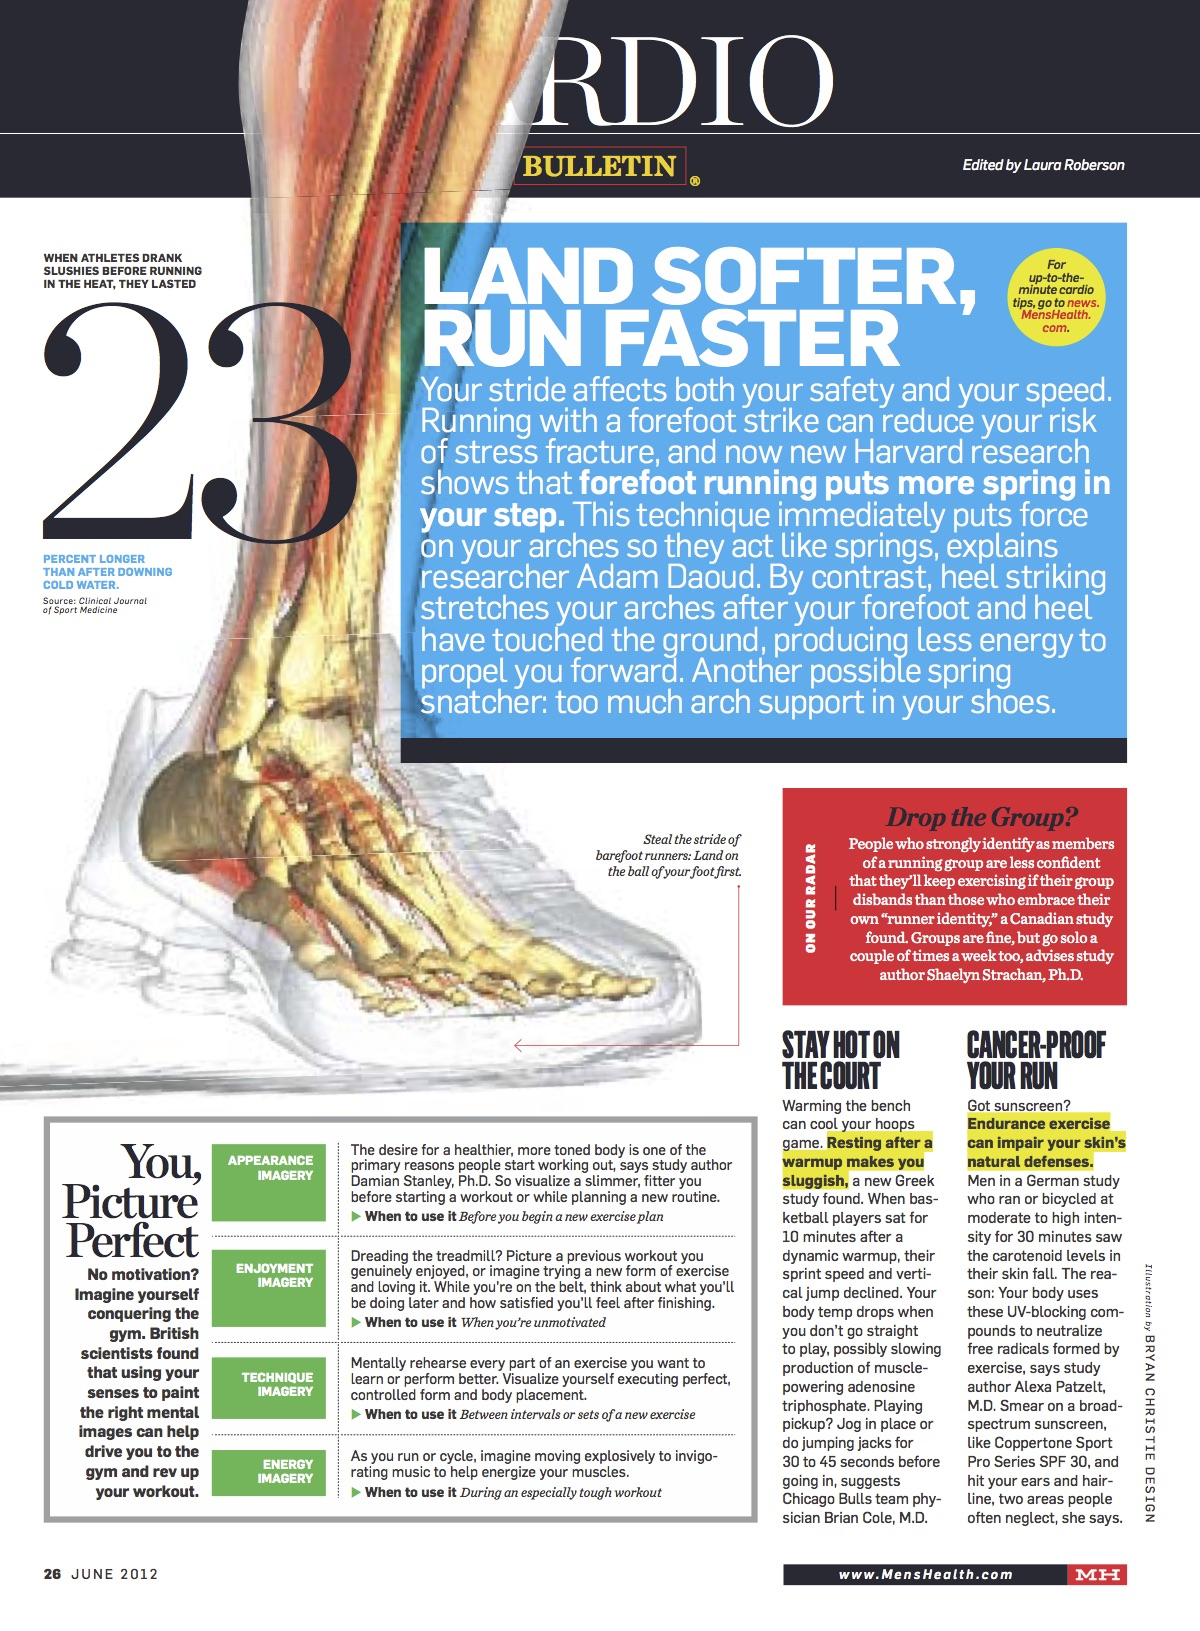 Men's Health magazine: Cardio Bulletin   Land Softer, Run Faster. Research shows that forefoot running puts more spring in your step.